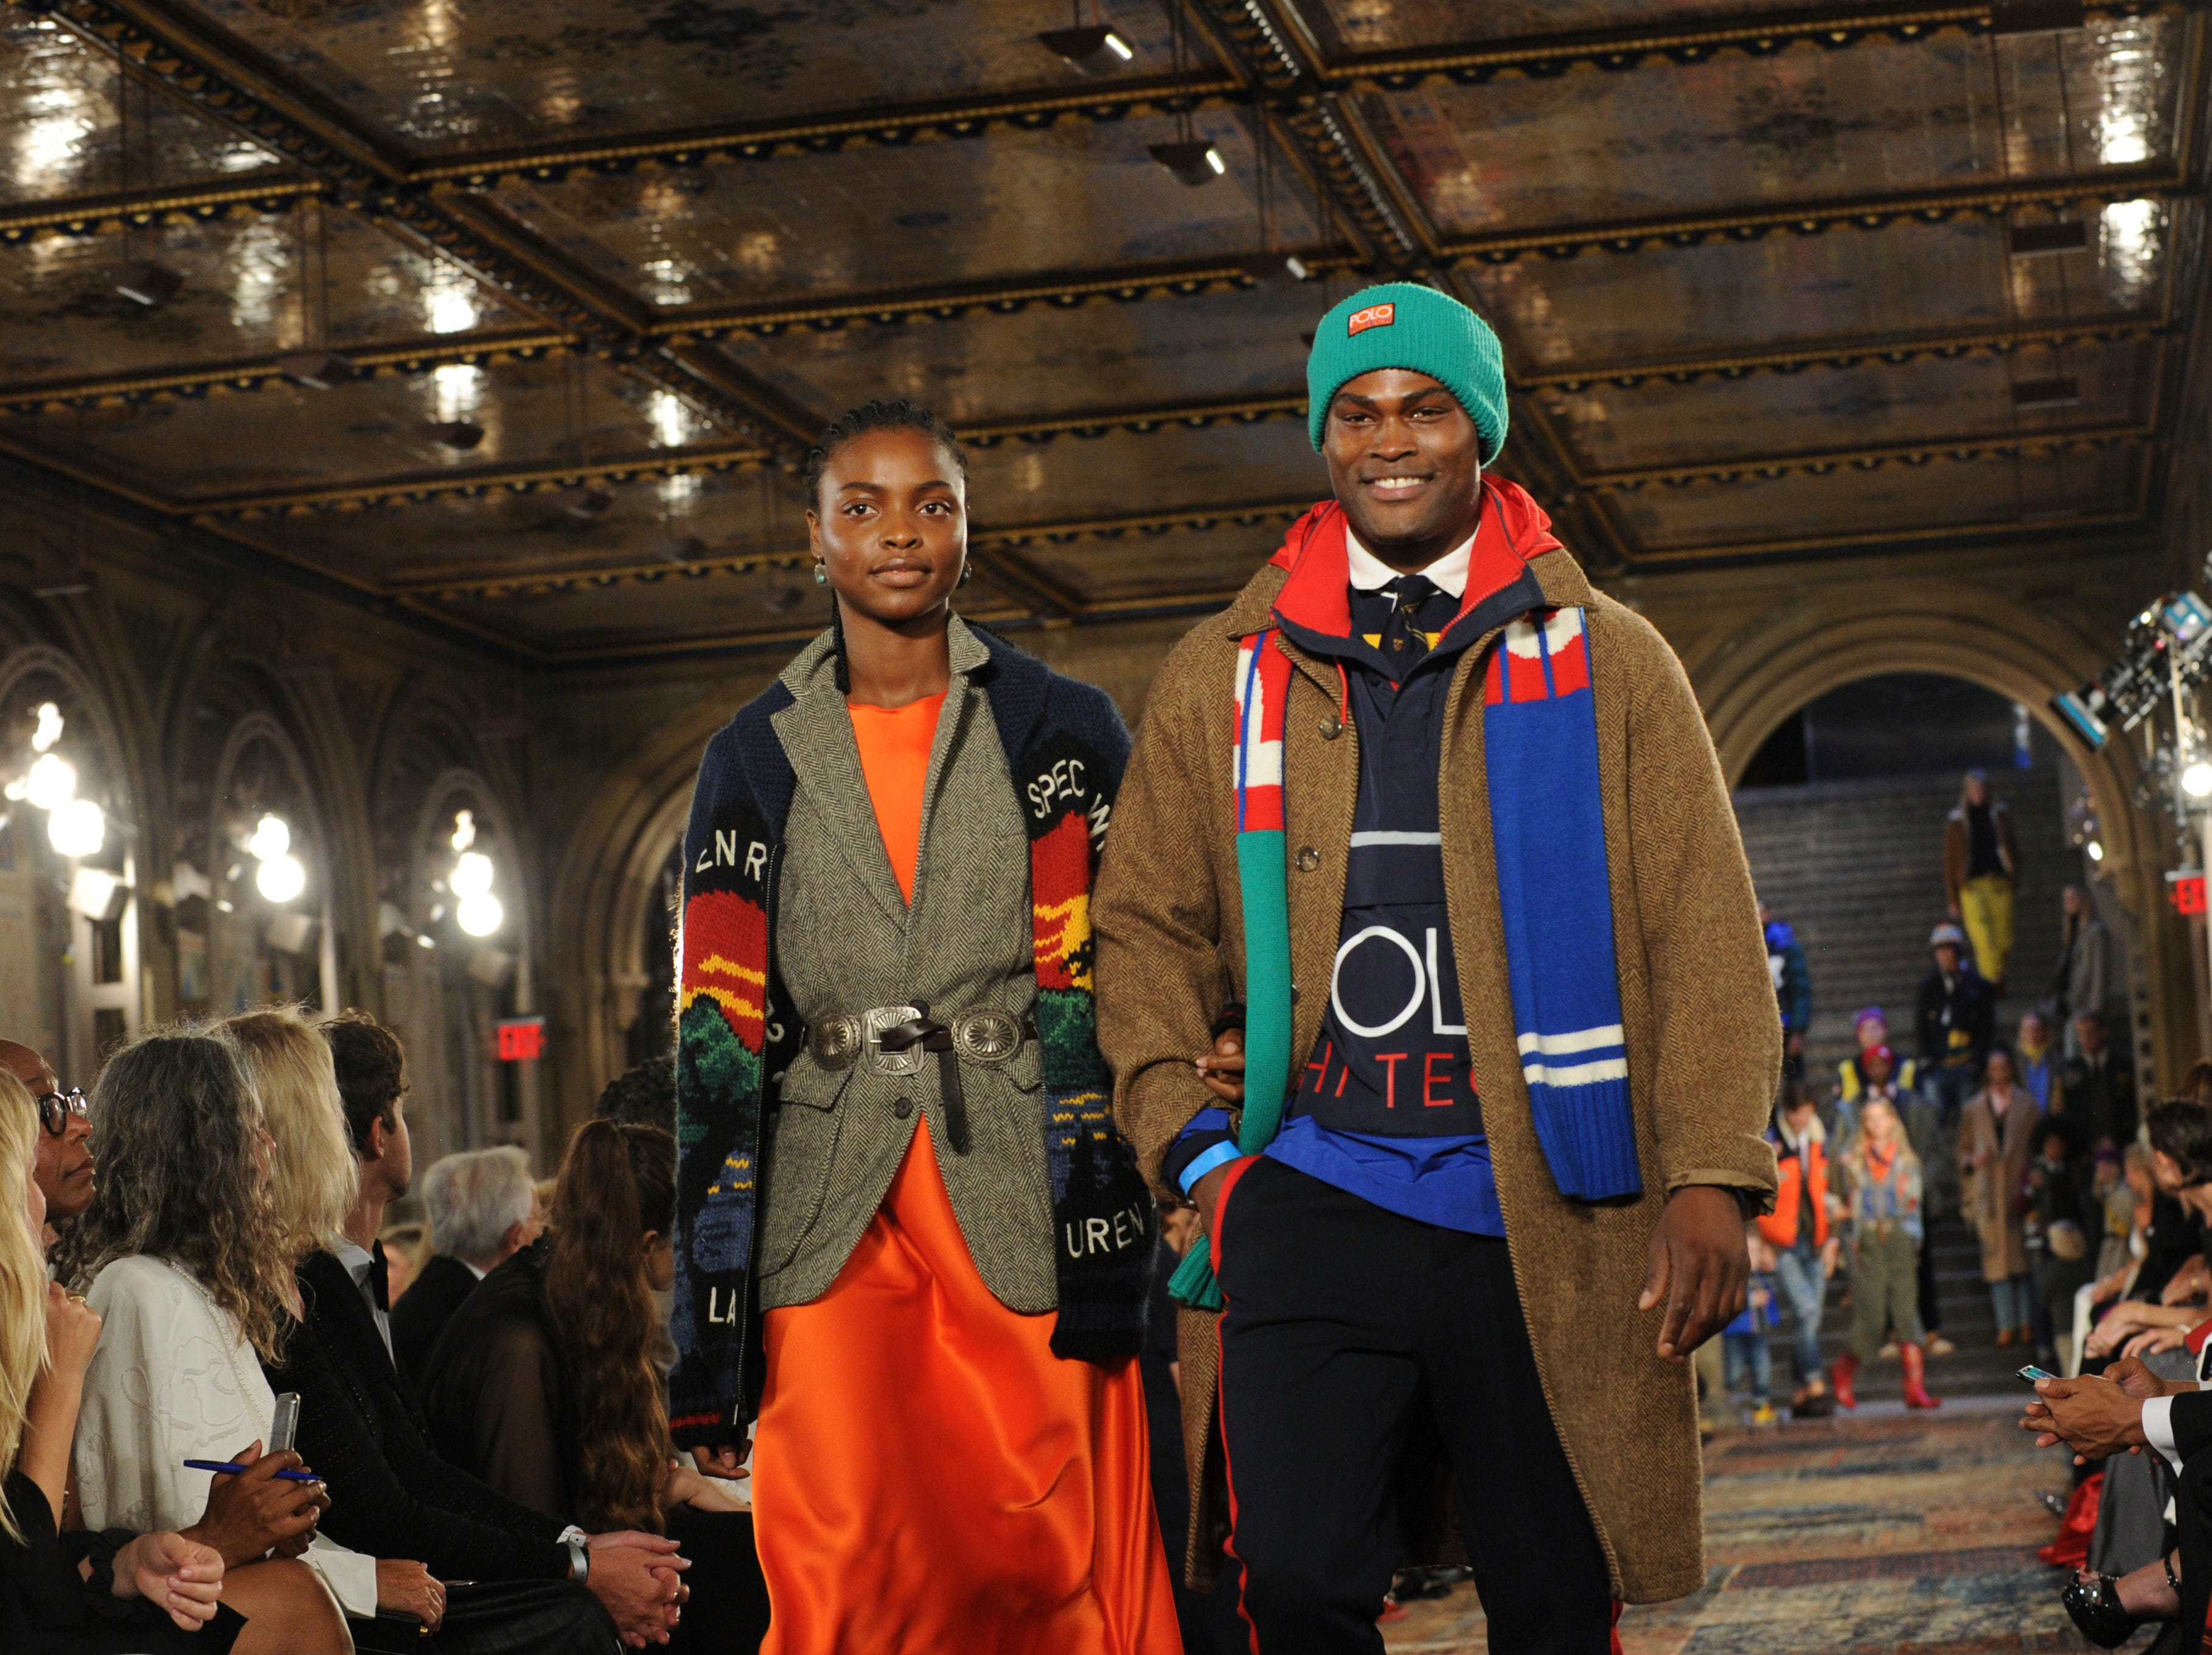 Models walk the runway at the Ralph Lauren 50th Anniversary Fashion Show during New York Fashion Week, Friday, Sept. 7, 2018. (AP Photo/Diane Bondareff) ORG XMIT: NYDB133